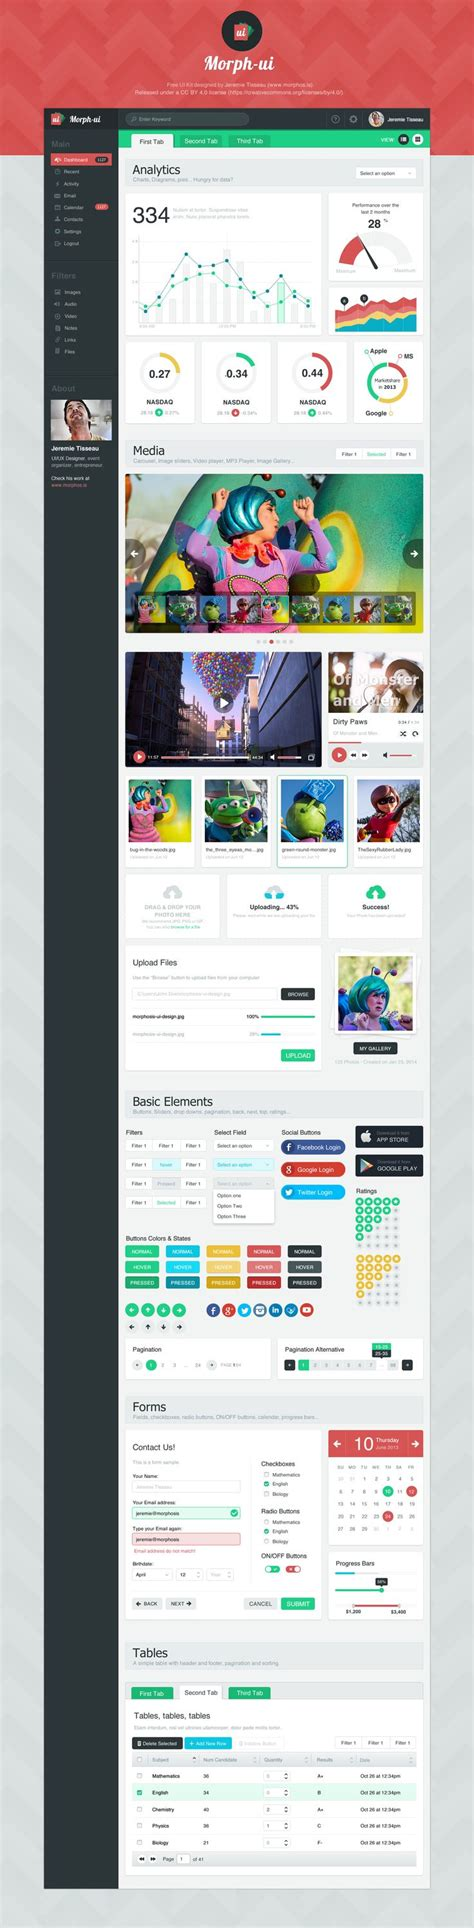 ui state pattern 1000 images about graphic inspiration web on pinterest